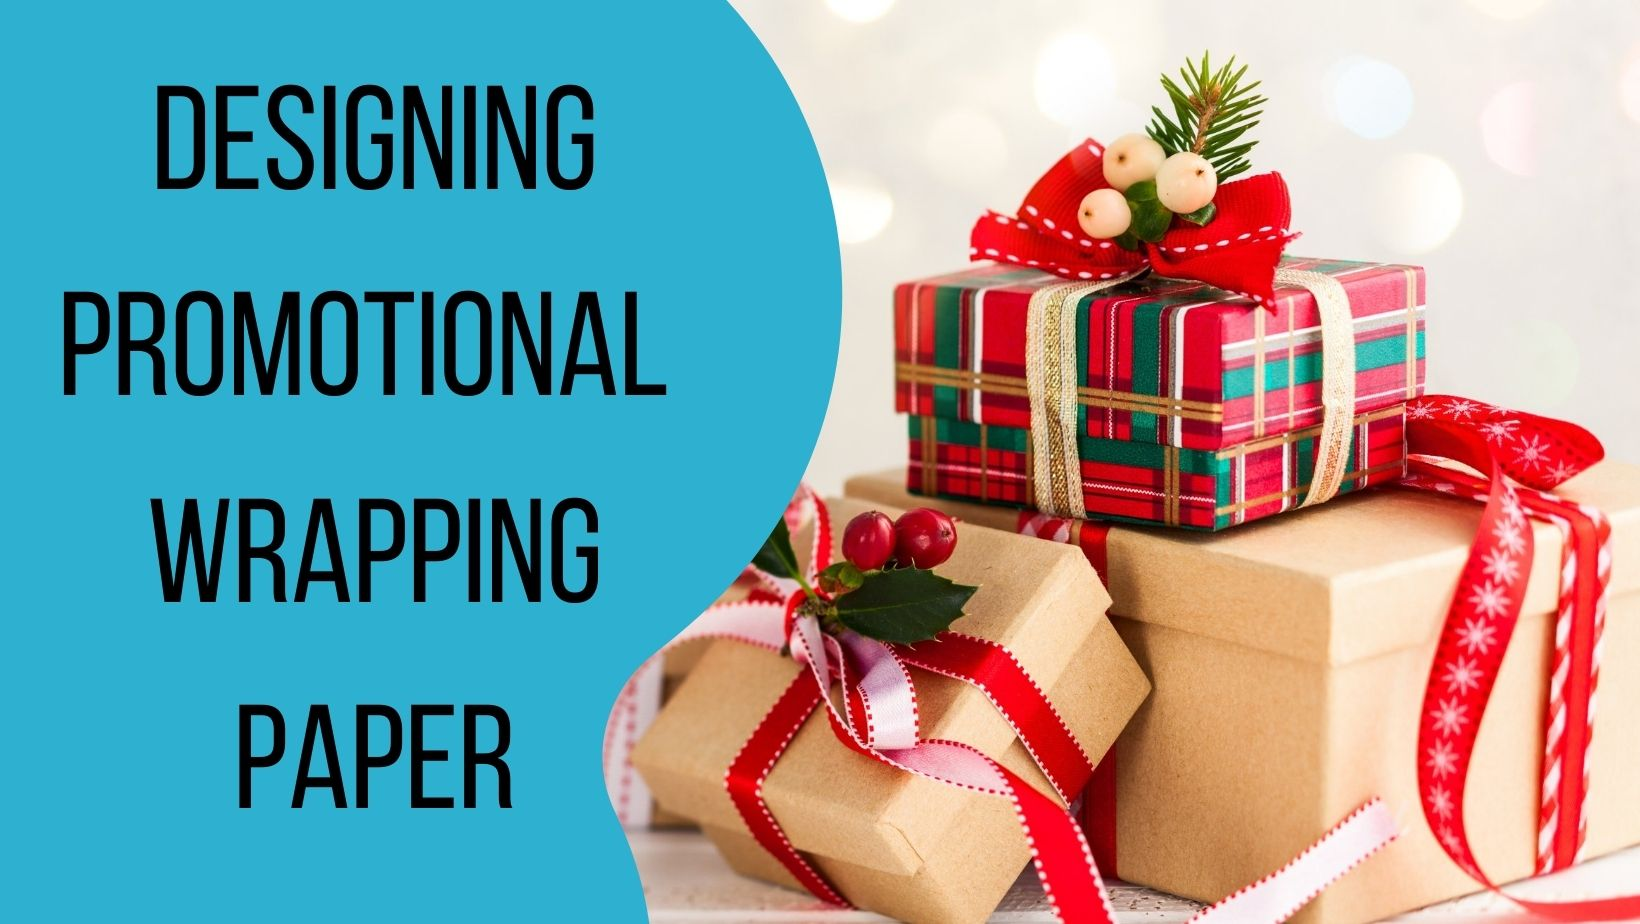 Designing promotional wrapping paper